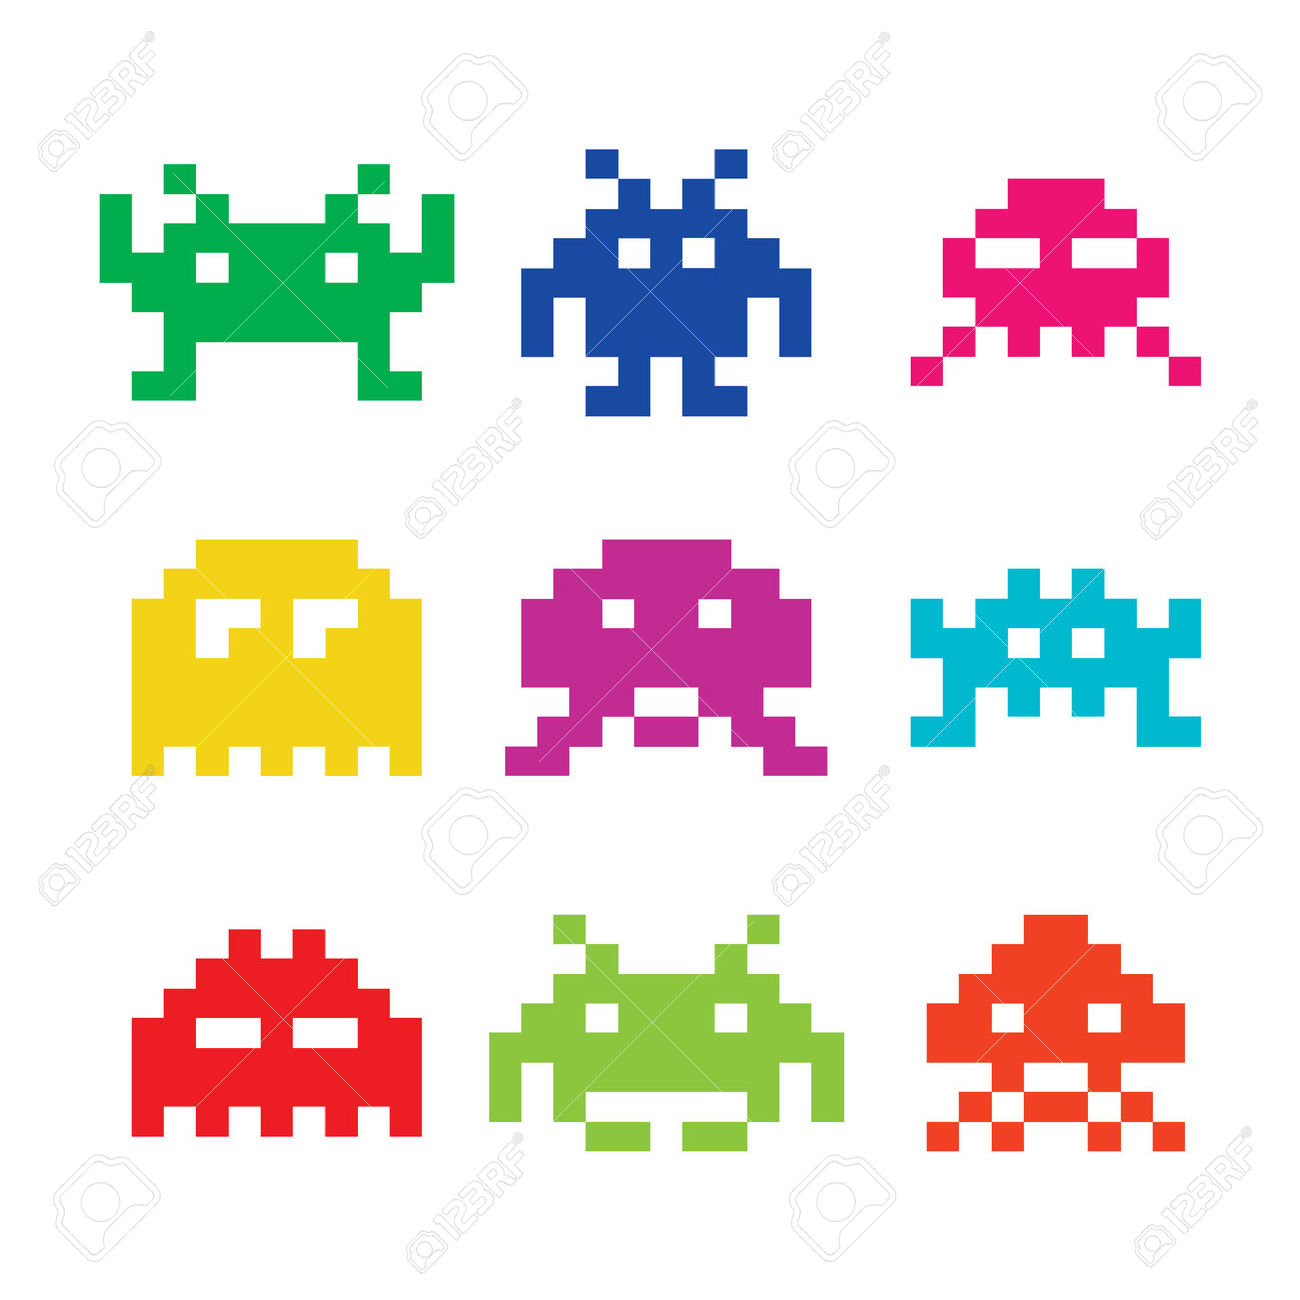 Space invaders clipart.